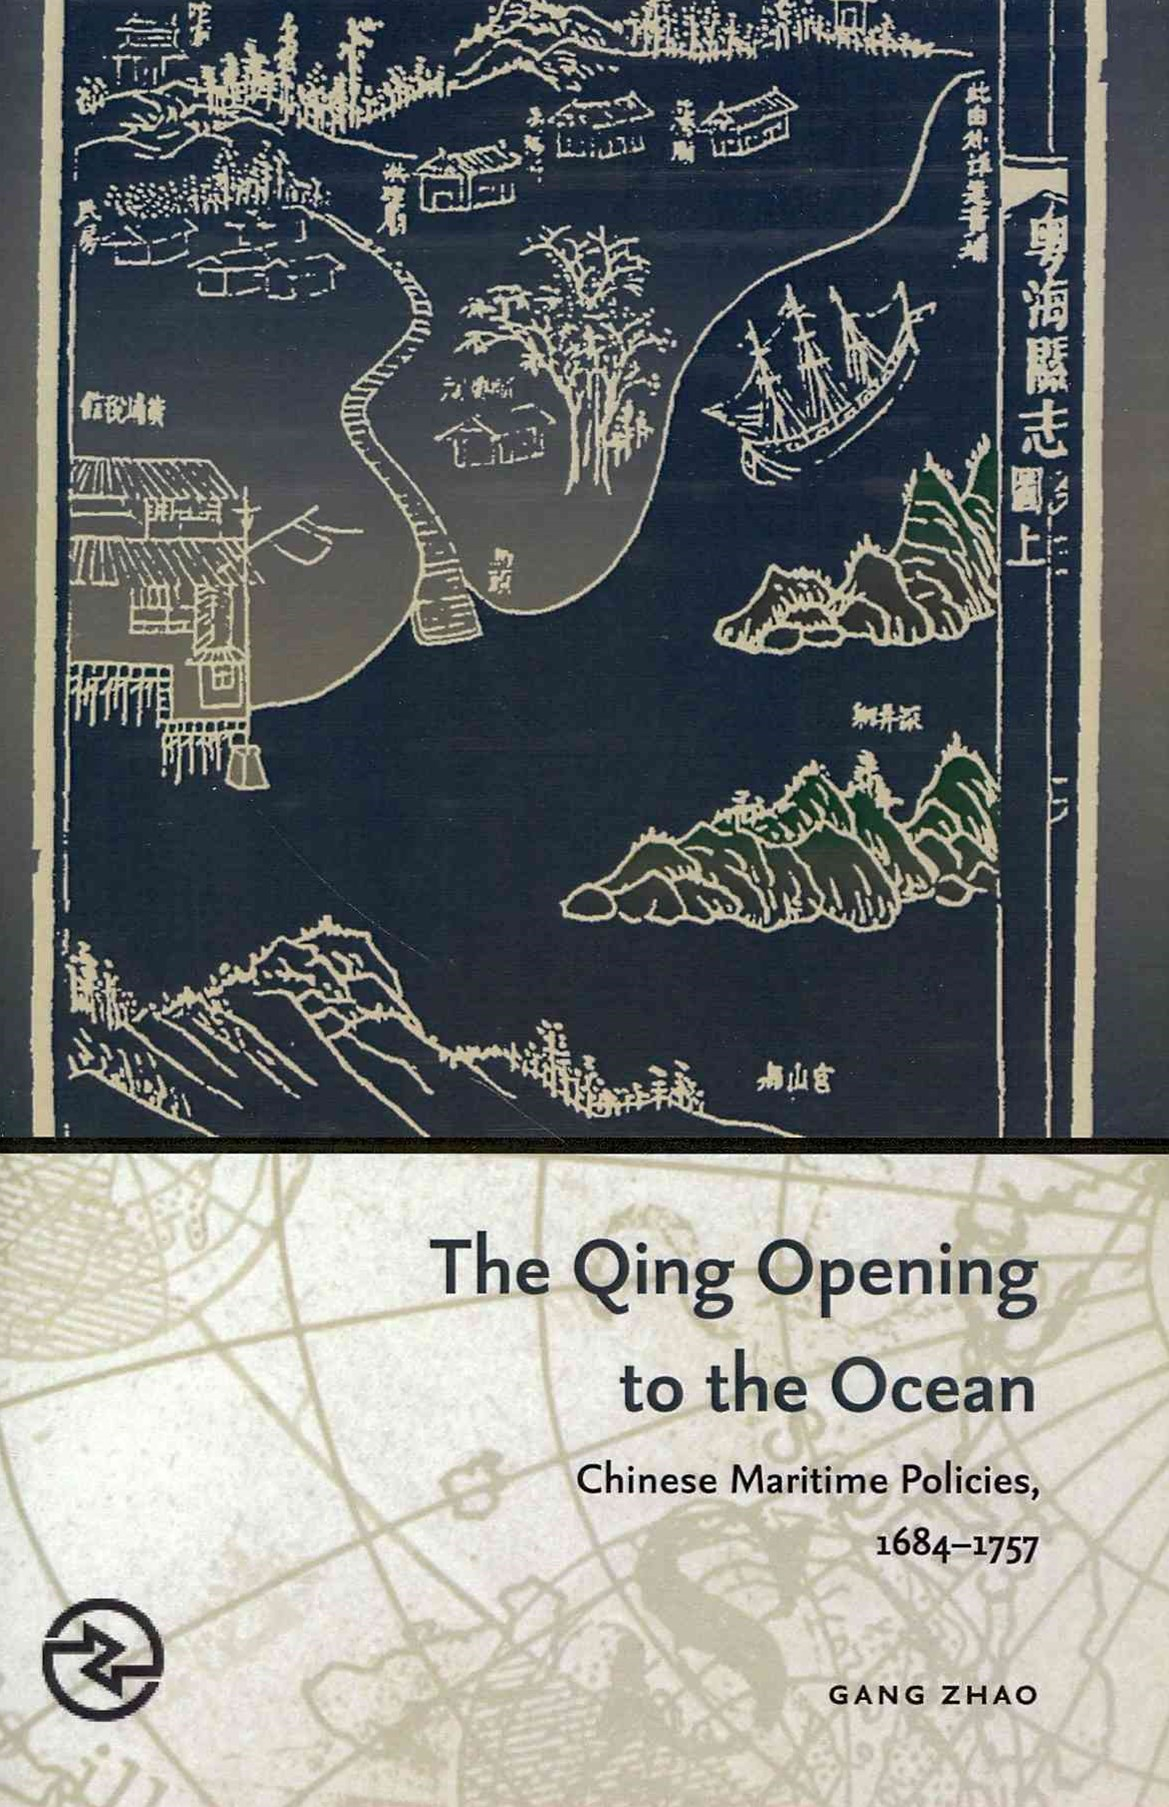 Qing Opening to the Ocean